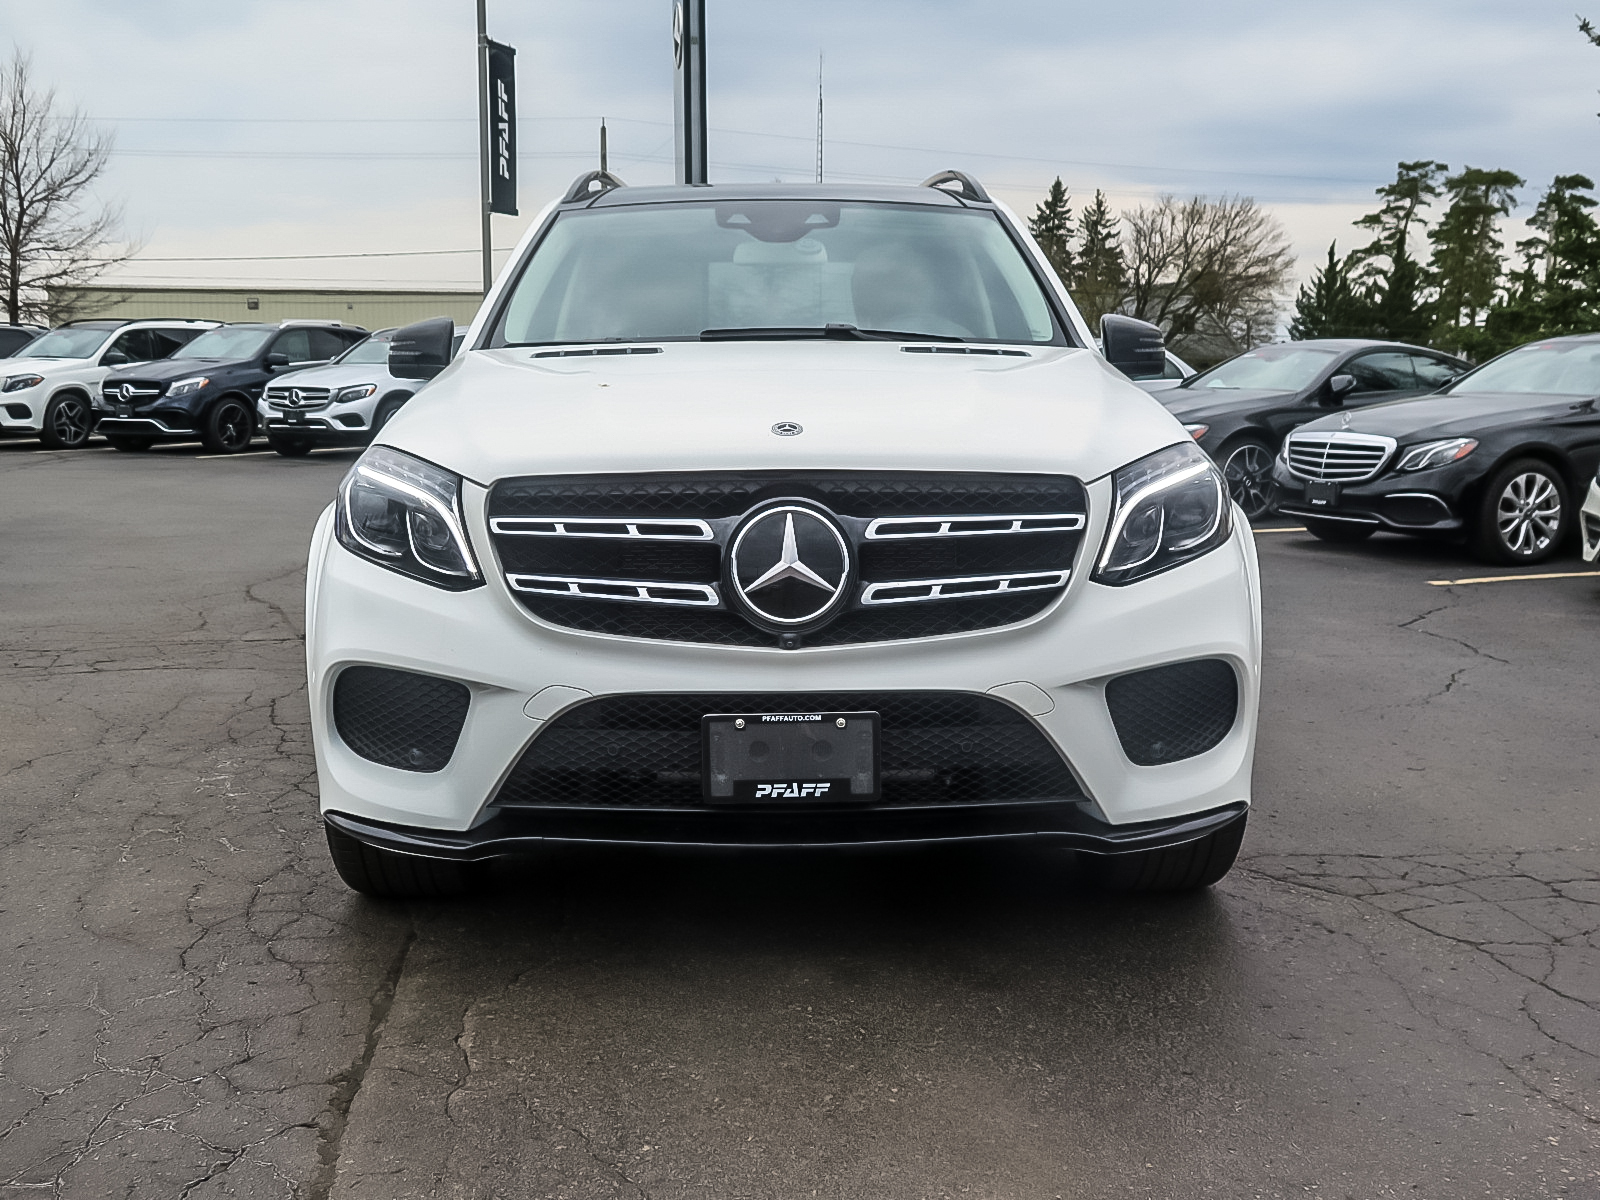 Certified Pre-Owned 2018 Mercedes-Benz GLS450 4MATIC SUV